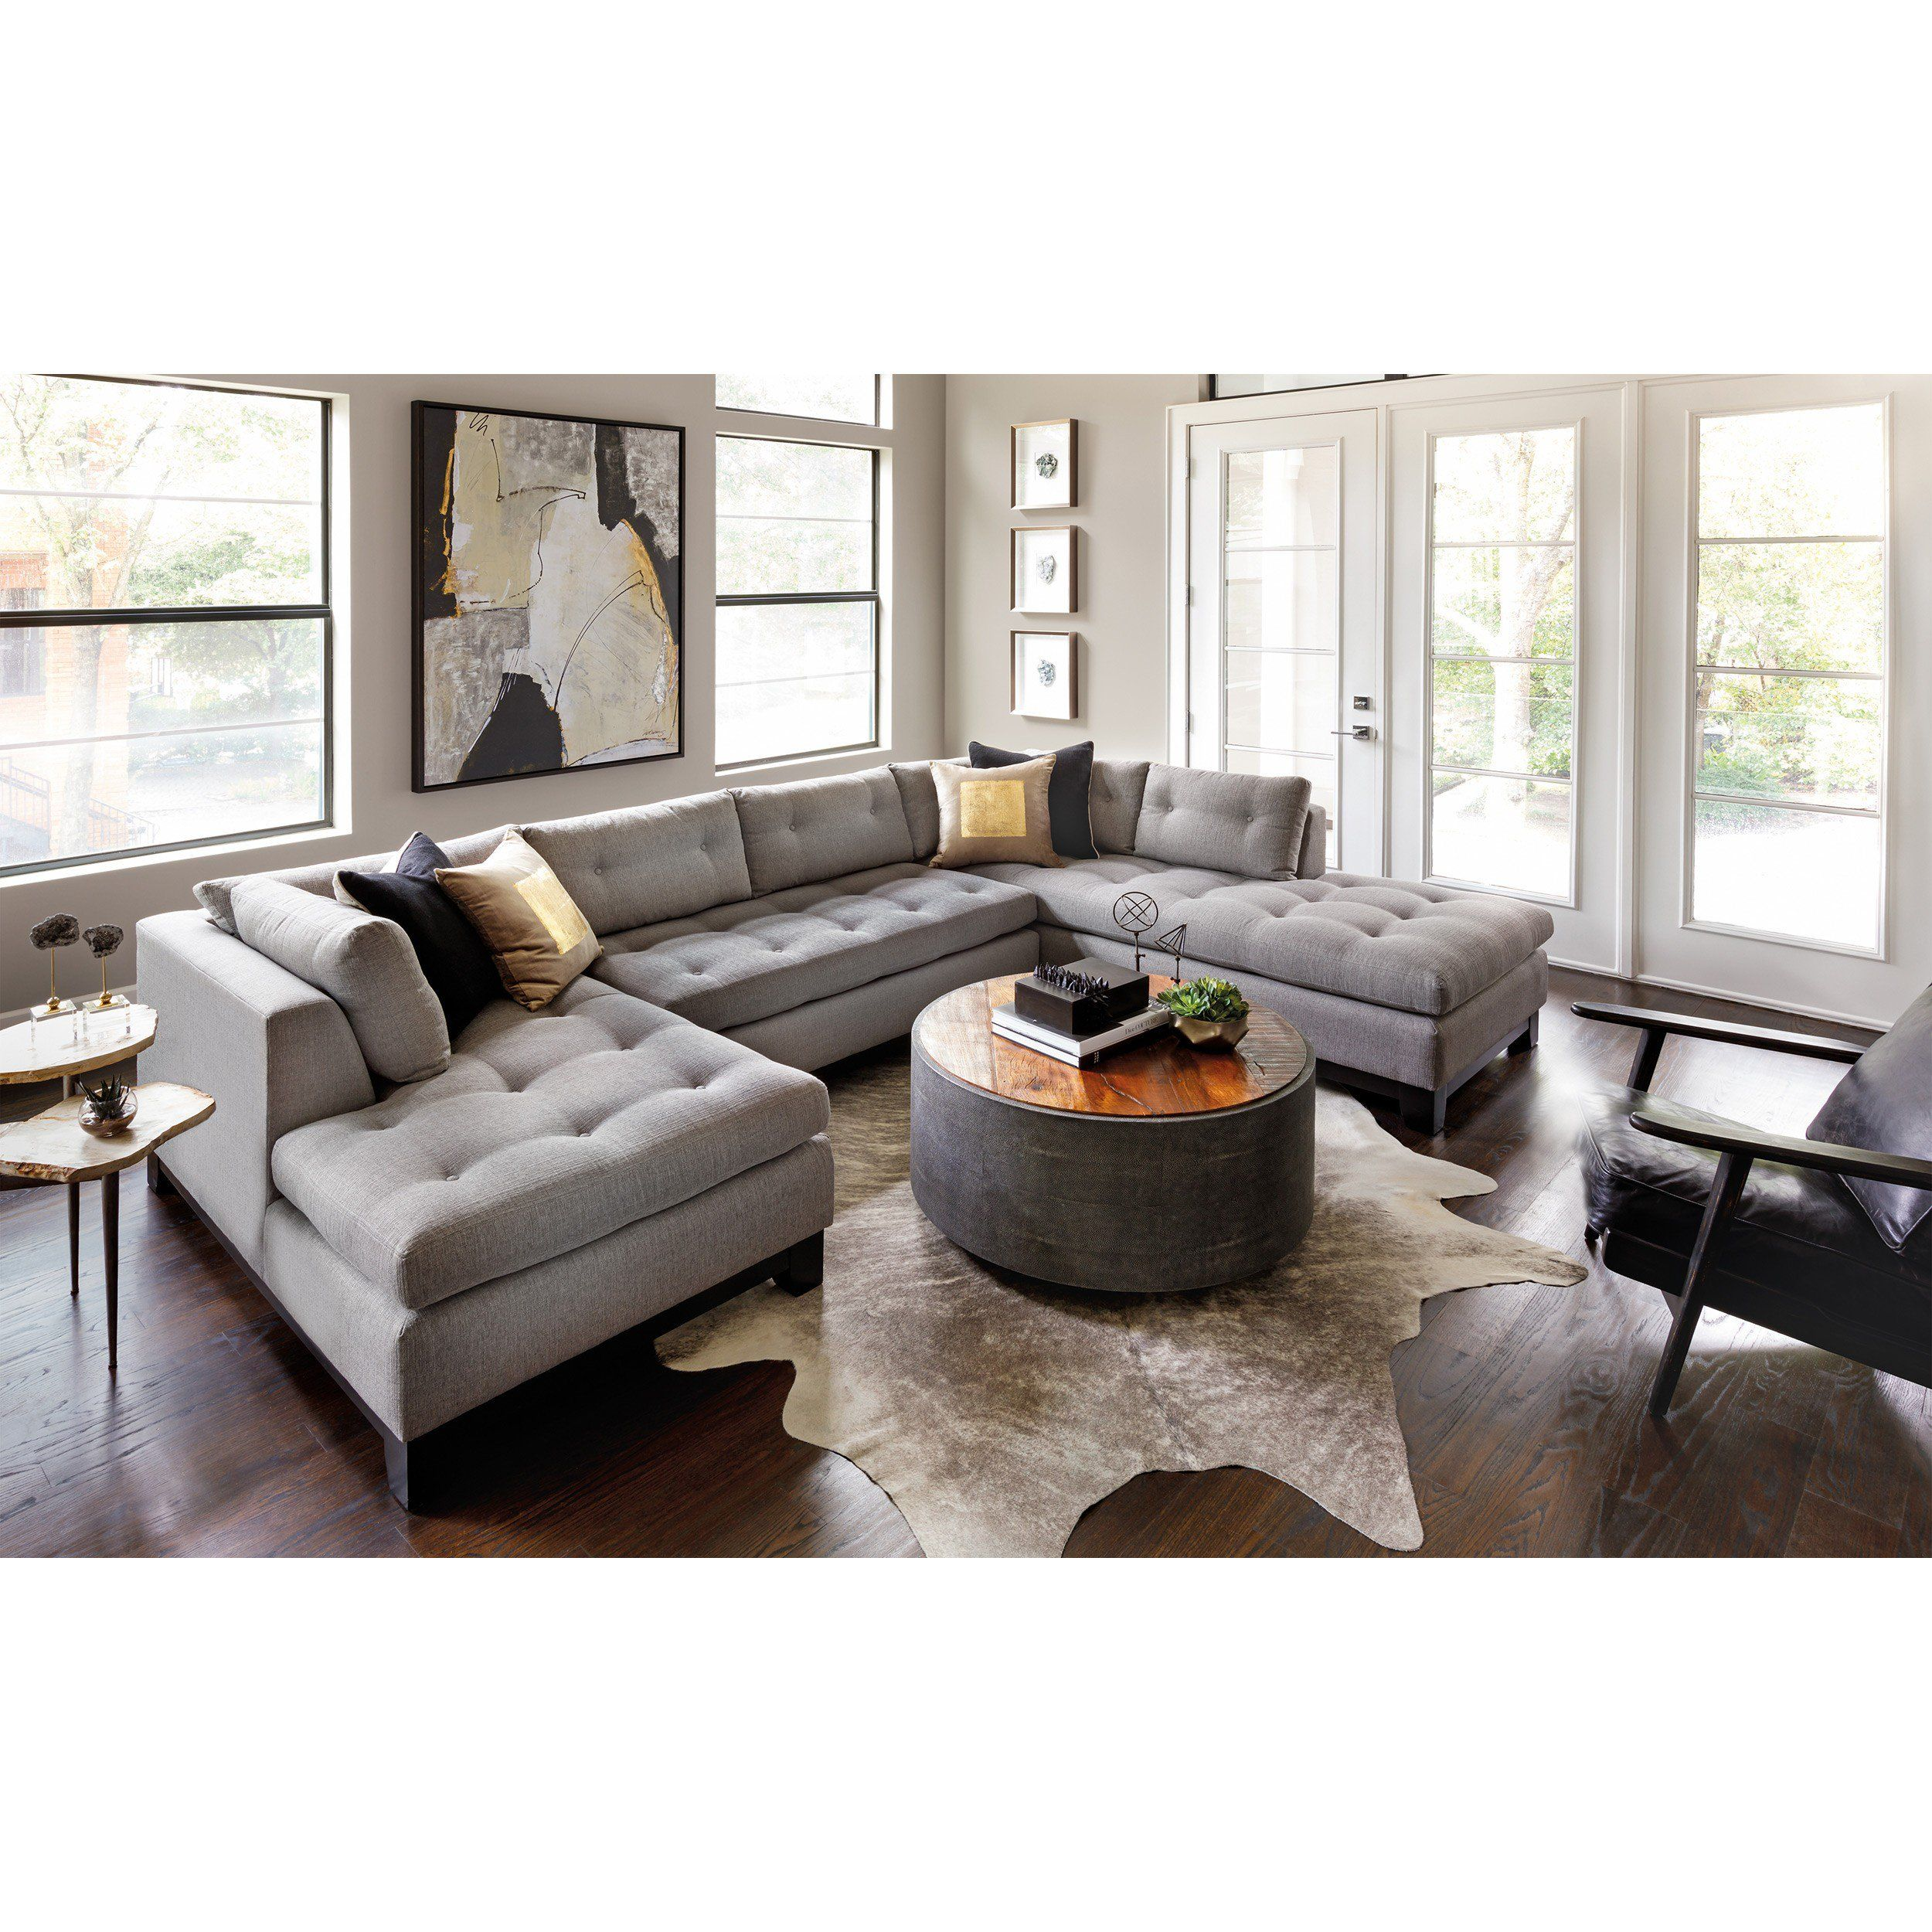 Room Store Chandler: Chandler Sectional, Durango Slate In 2019